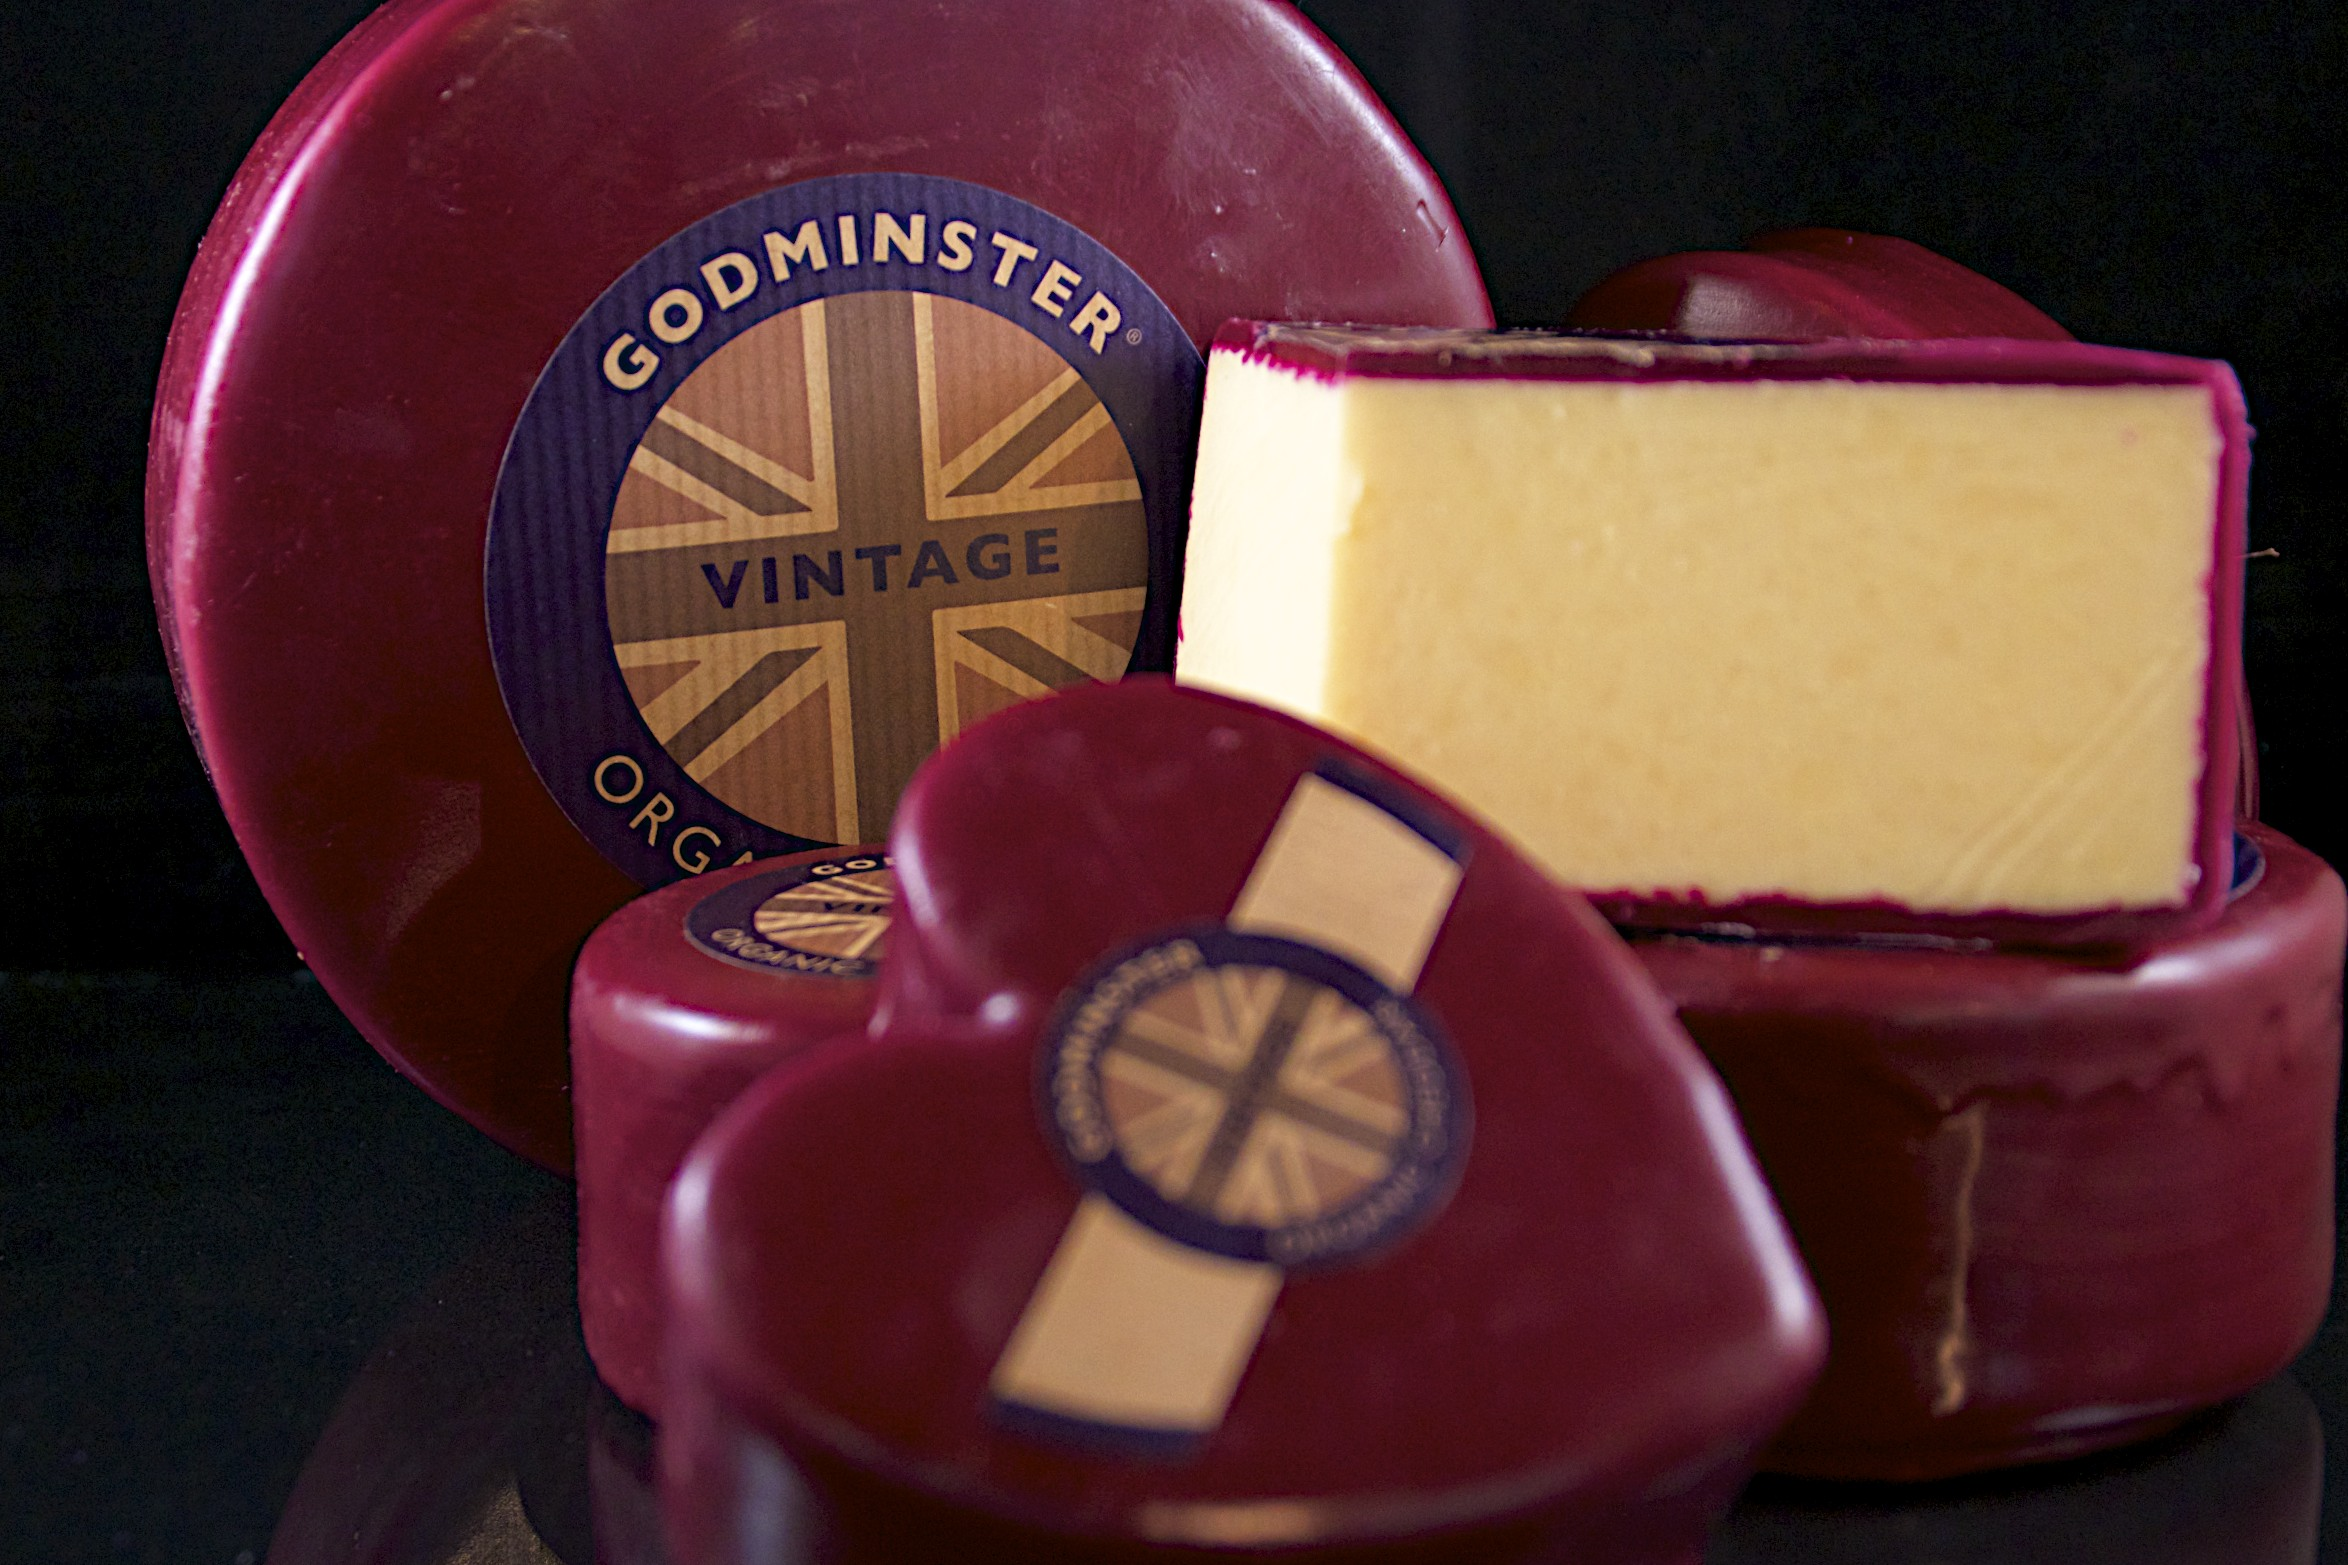 Godminster Cheese - Organic Cheddar